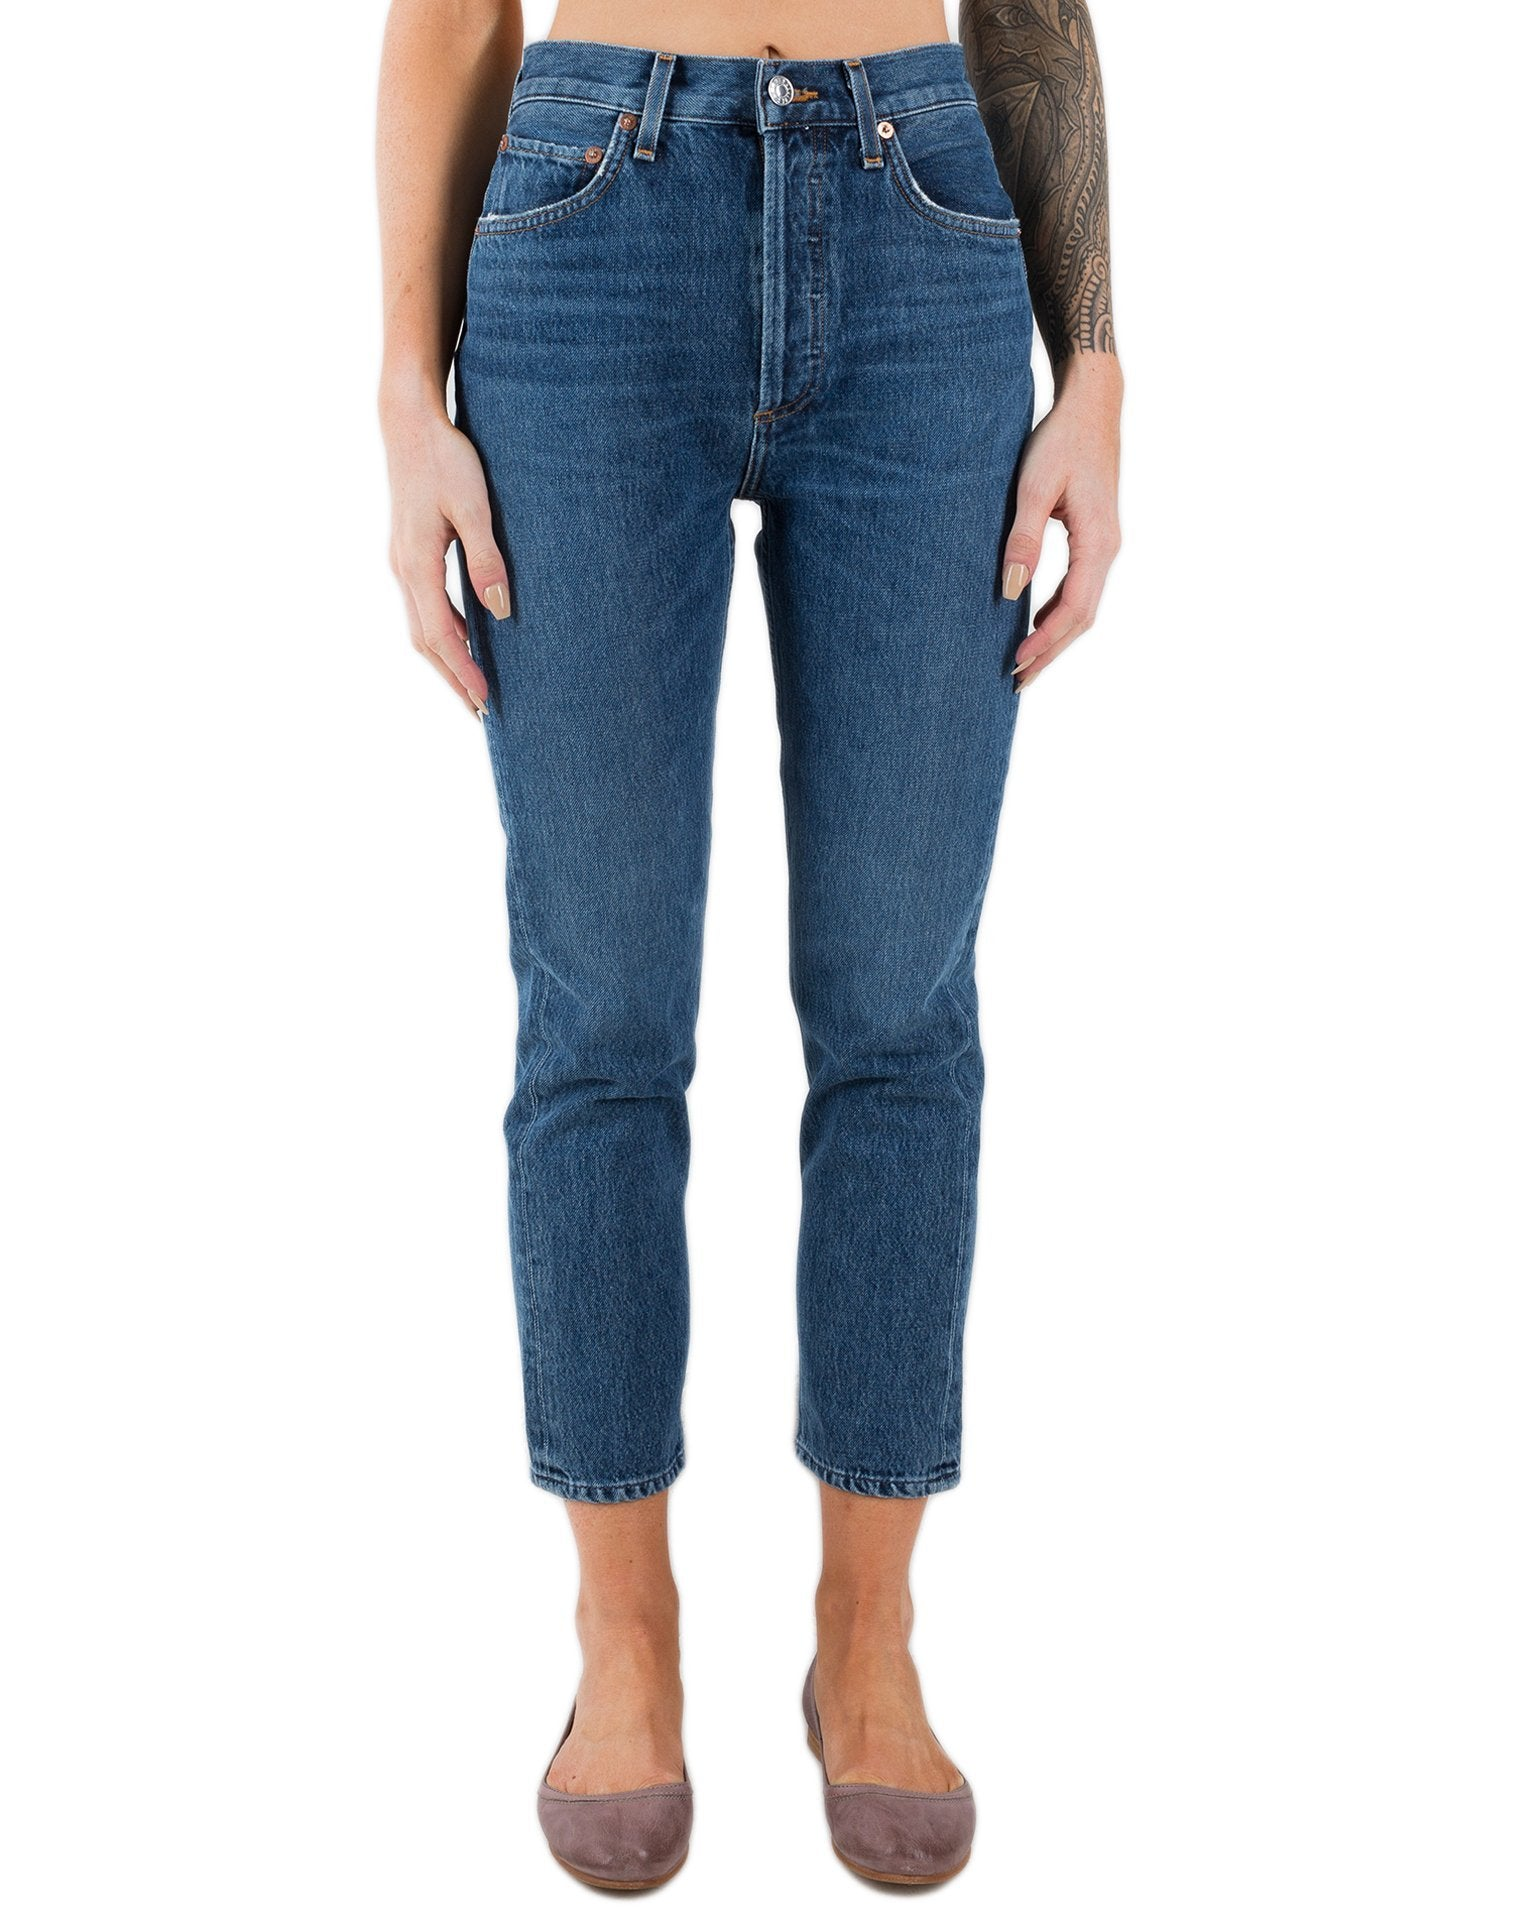 AGOLDE Denim Air Blue / 24 Riley Hi Rise Straight Crop in Air Blue